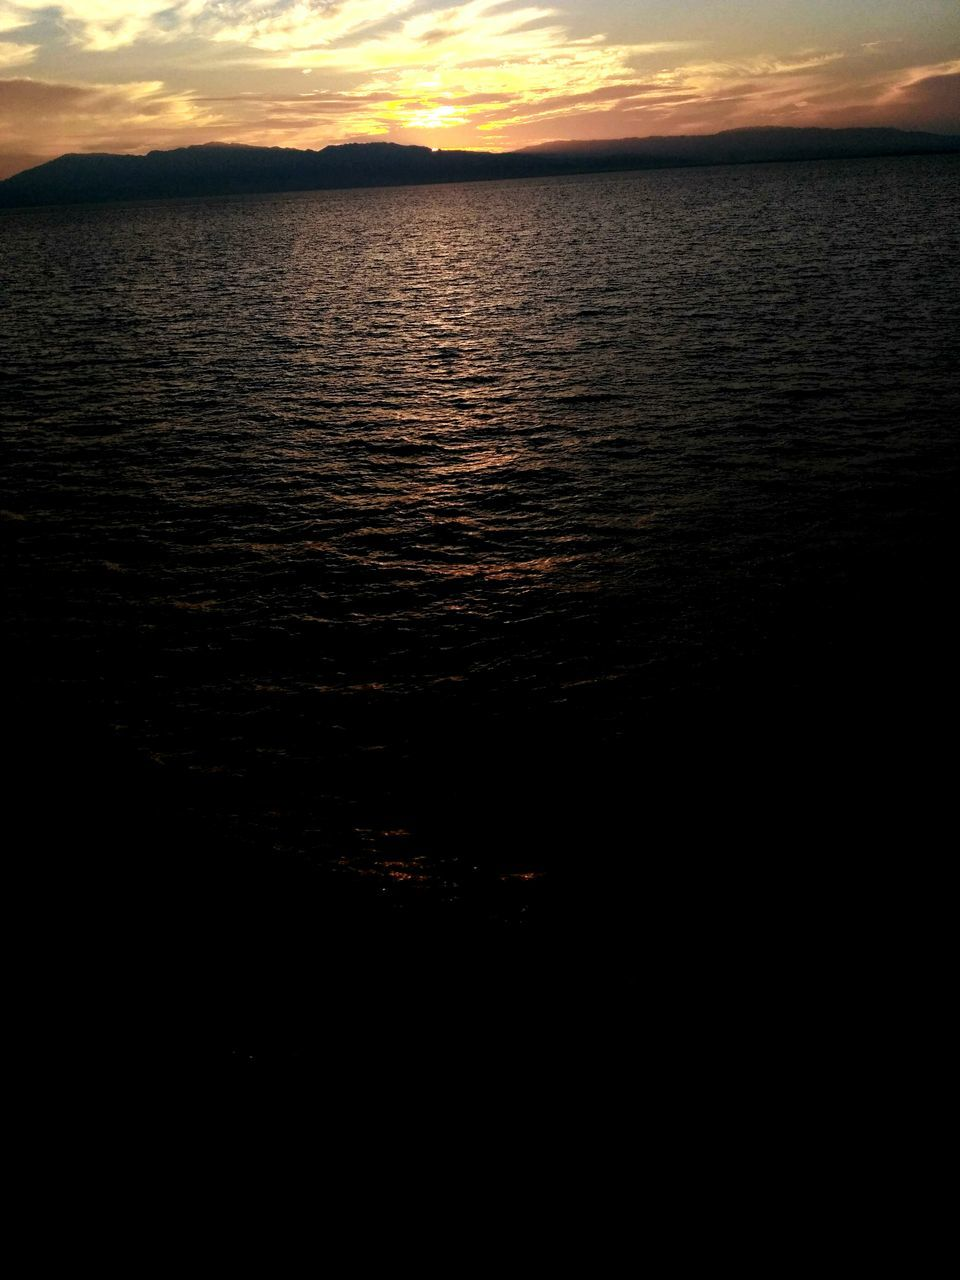 sunset, scenics, tranquil scene, beauty in nature, water, nature, tranquility, reflection, sky, silhouette, idyllic, rippled, no people, waterfront, lake, outdoors, cloud - sky, day